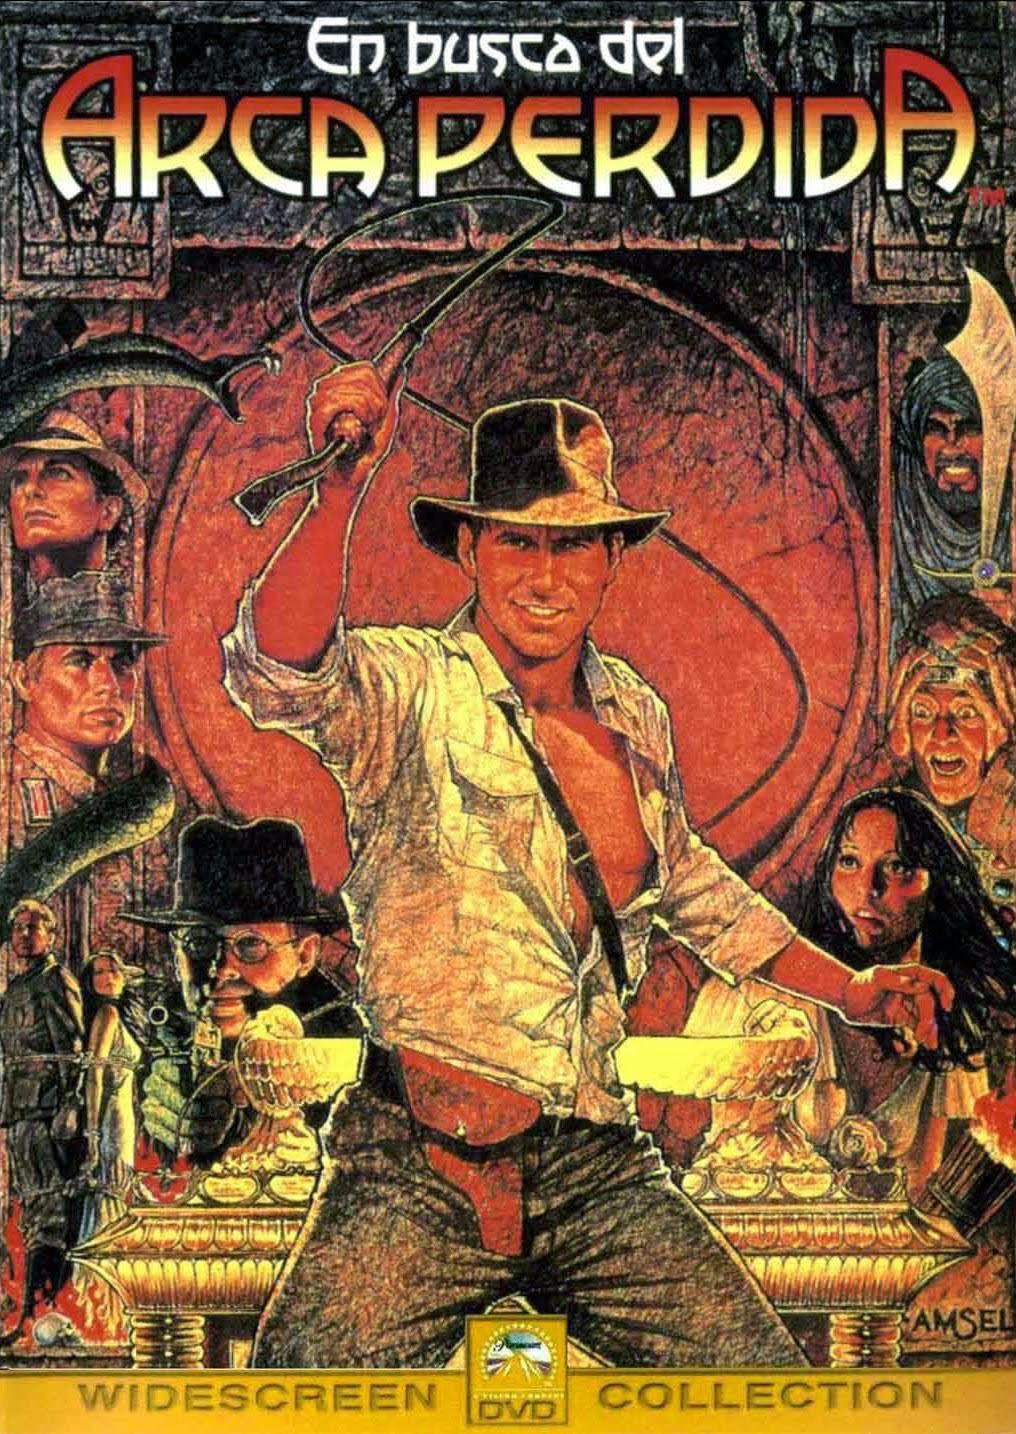 beowulf indiana jones A short plot synopsis of beowulf - and a critical analysis what  from, say, a  james bond or indiana jones film, or a fast-paced fantasy novel or.